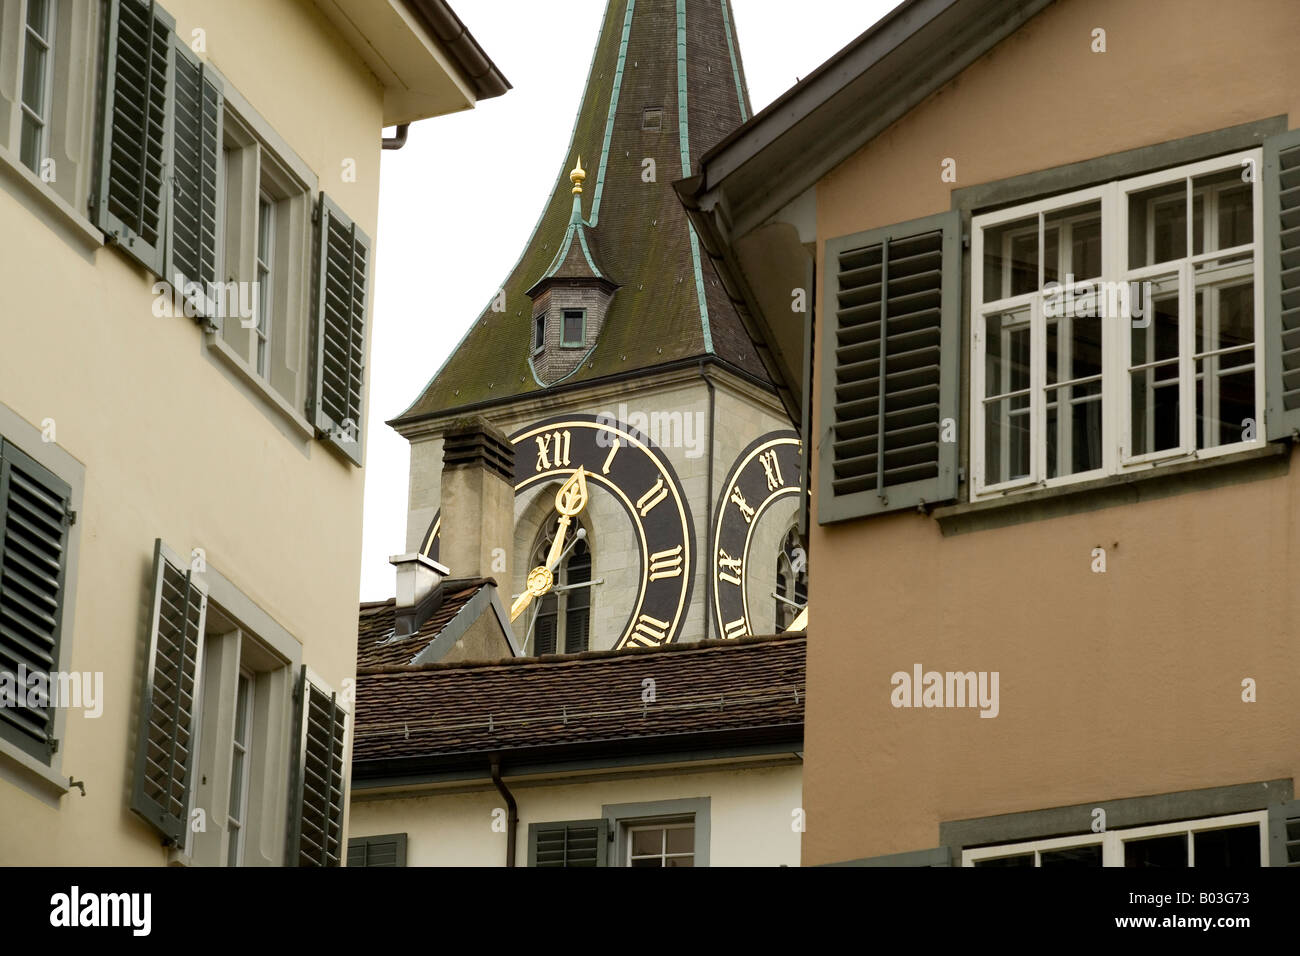 clock face of St Peter's church in Zurich which is the largest clock face in Europe - Stock Image